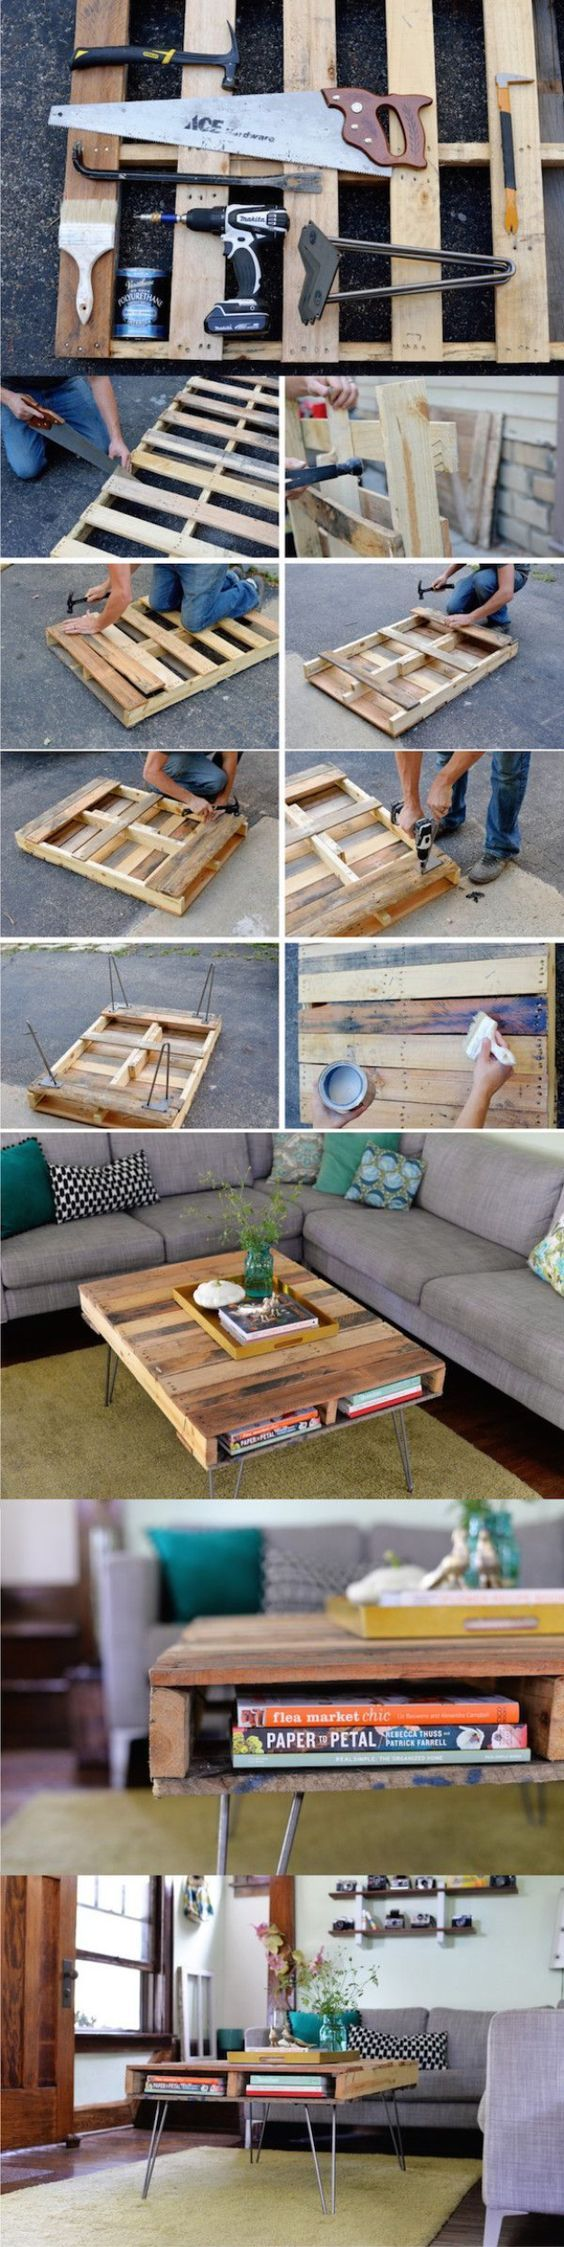 Easy DIY Home Decor Projects  DIY Pallet Furniture Tutorial   Cheap Coffee Table Ideas   DIY Projects and Crafts by DIY JOY: